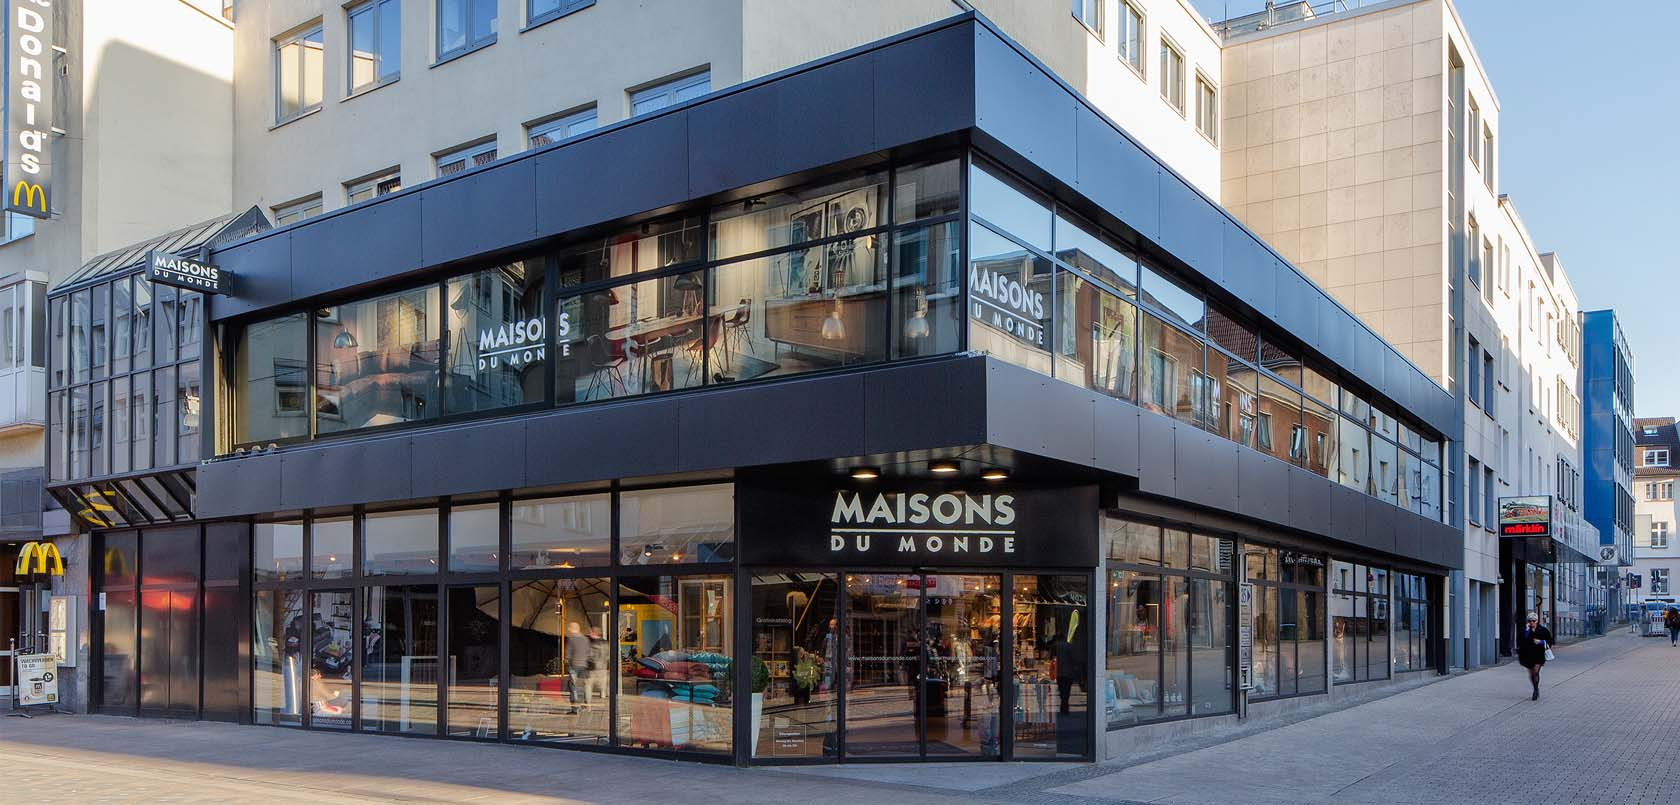 Affordable maisons du monde store in dortmund germany with maison du monde logo - Maison du monde logo ...